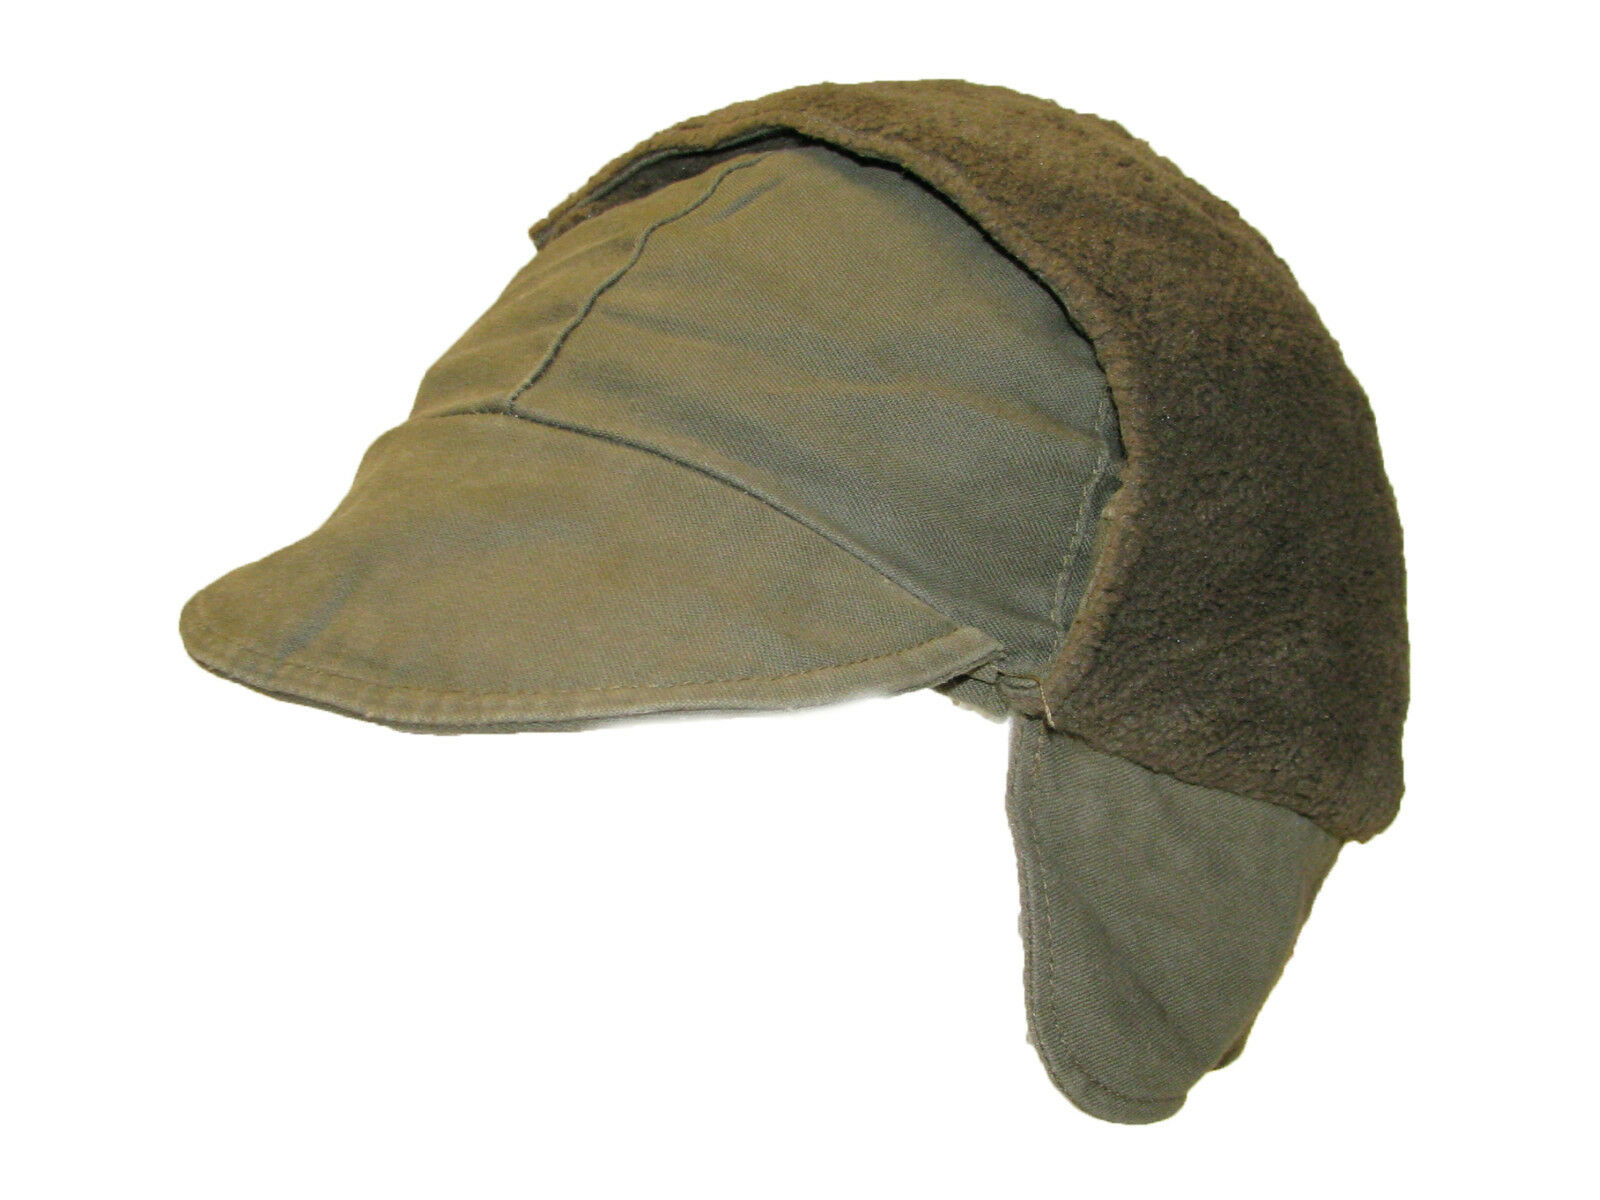 German Olive Green Winter Cap Genuine Army Surplus Hat Ear Flaps Soldier Sizes